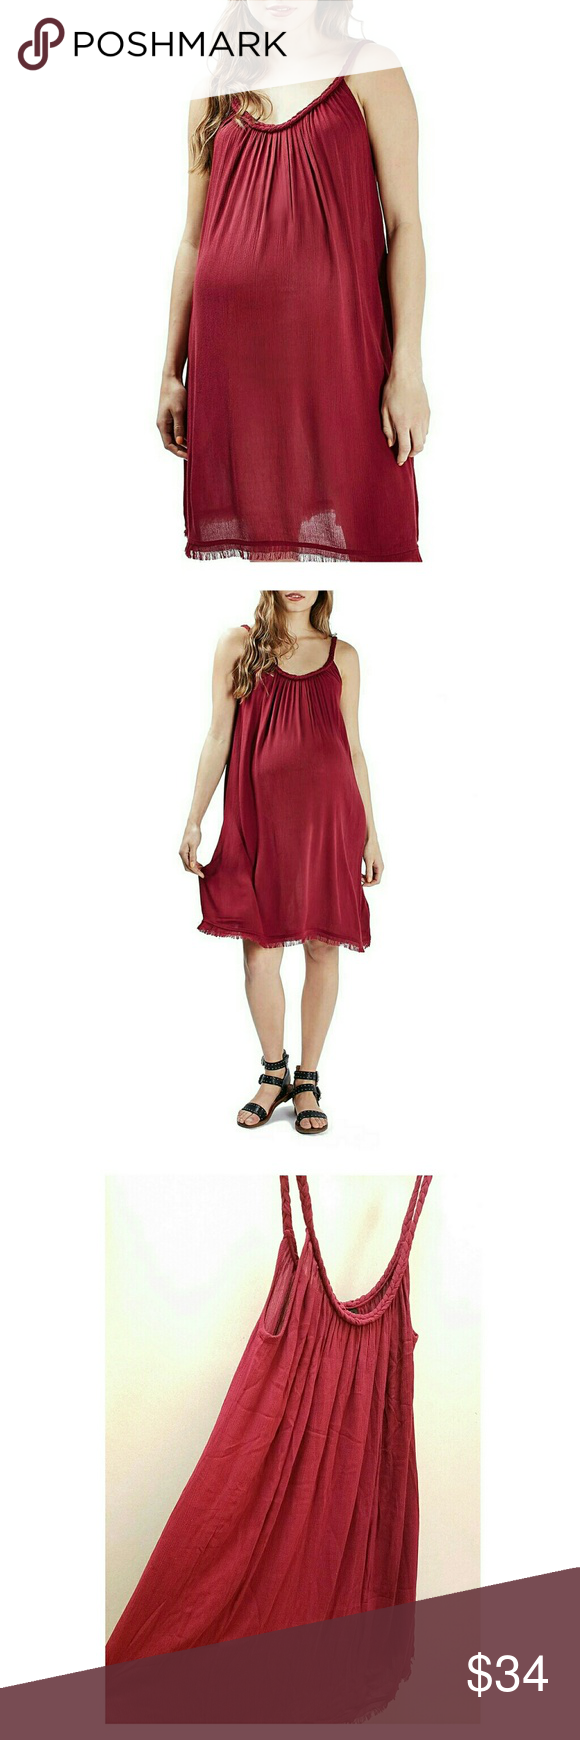 """TOPSHOP Maternity Braided Trim Swing Dress New with Tags Topshop Maternity soft and breezy swing style maternity sundress. Beautiful braided trim along neckline and raw hem. Oversize fit for comfort.   US 6 (UK 10)   Length 37.5"""" / Underarm to Underarm 16""""   100% Viscose  Open to REASONABLE OFFERS Topshop MATERNITY Dresses"""